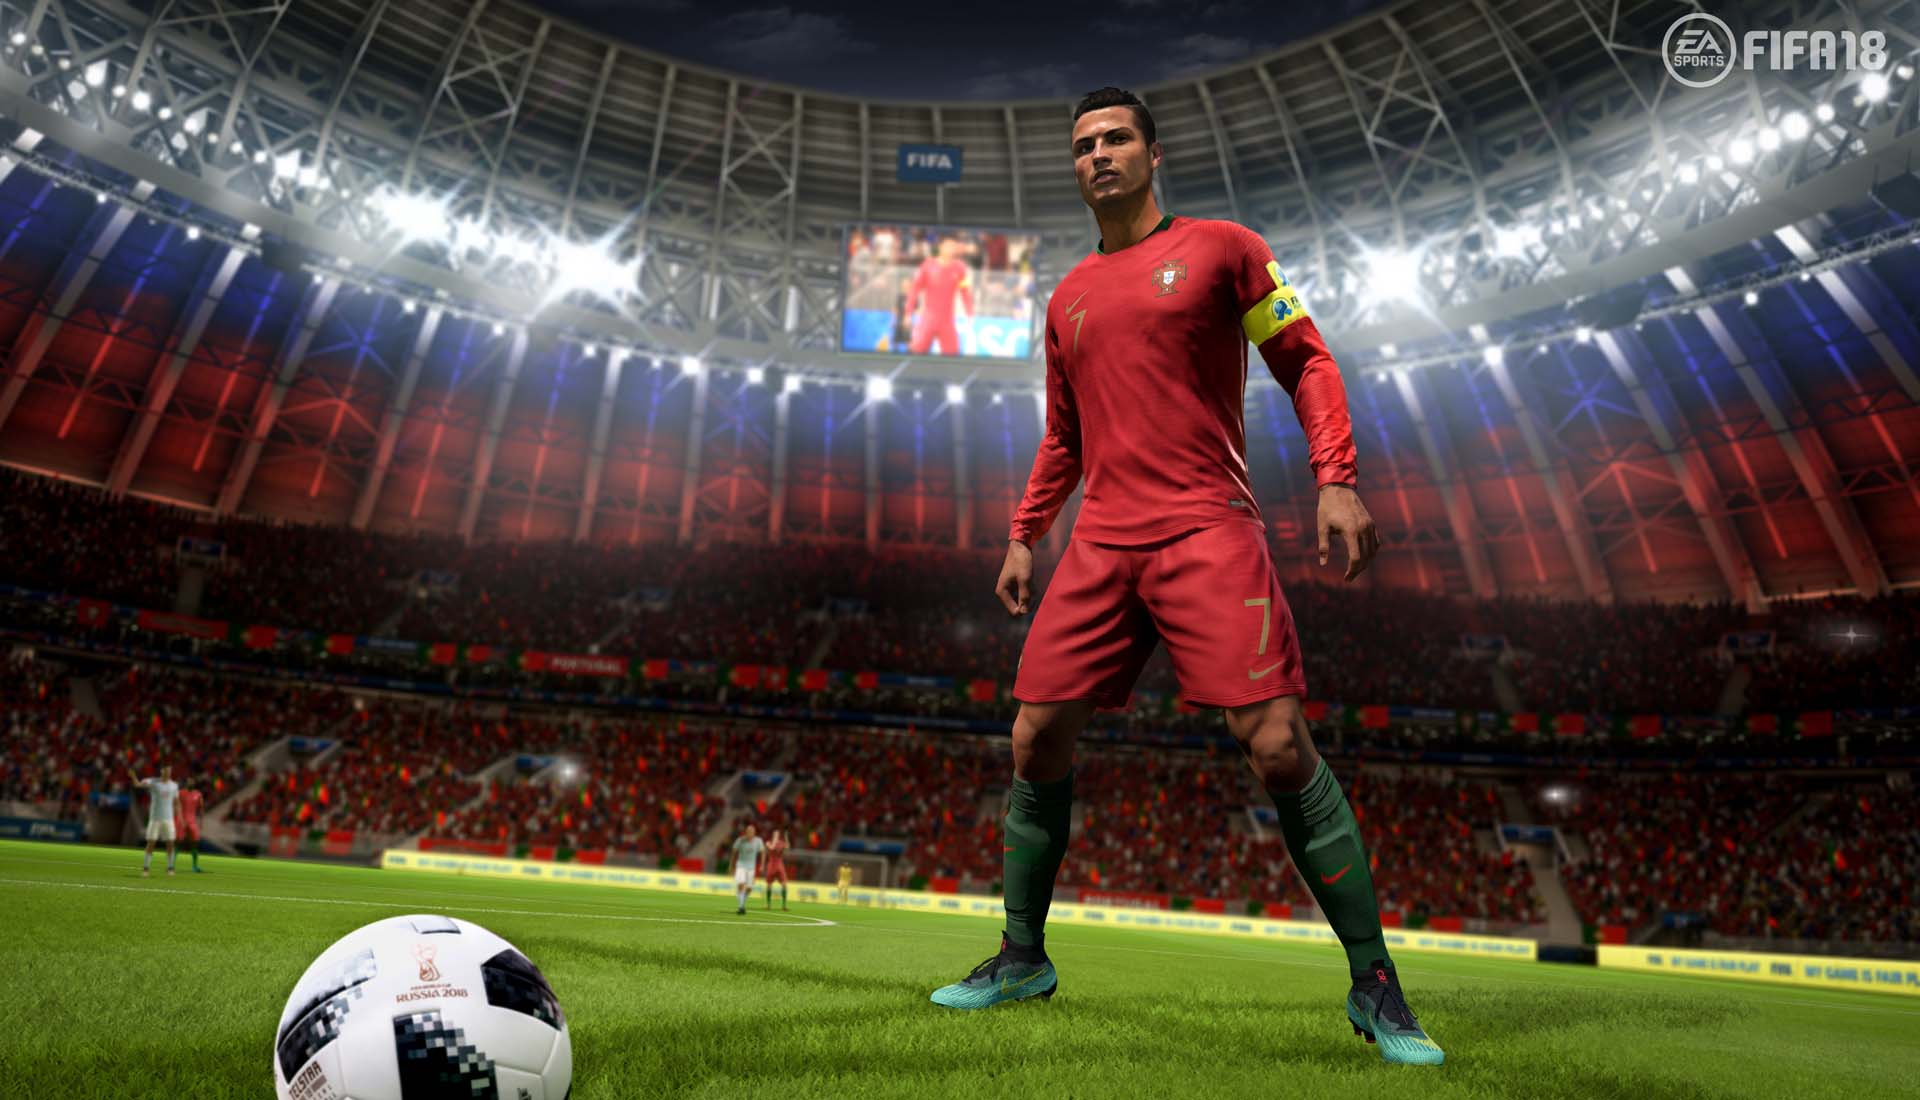 Cr7 Stars In Fifa 18 World Cup Mode Trailer Soccerbible